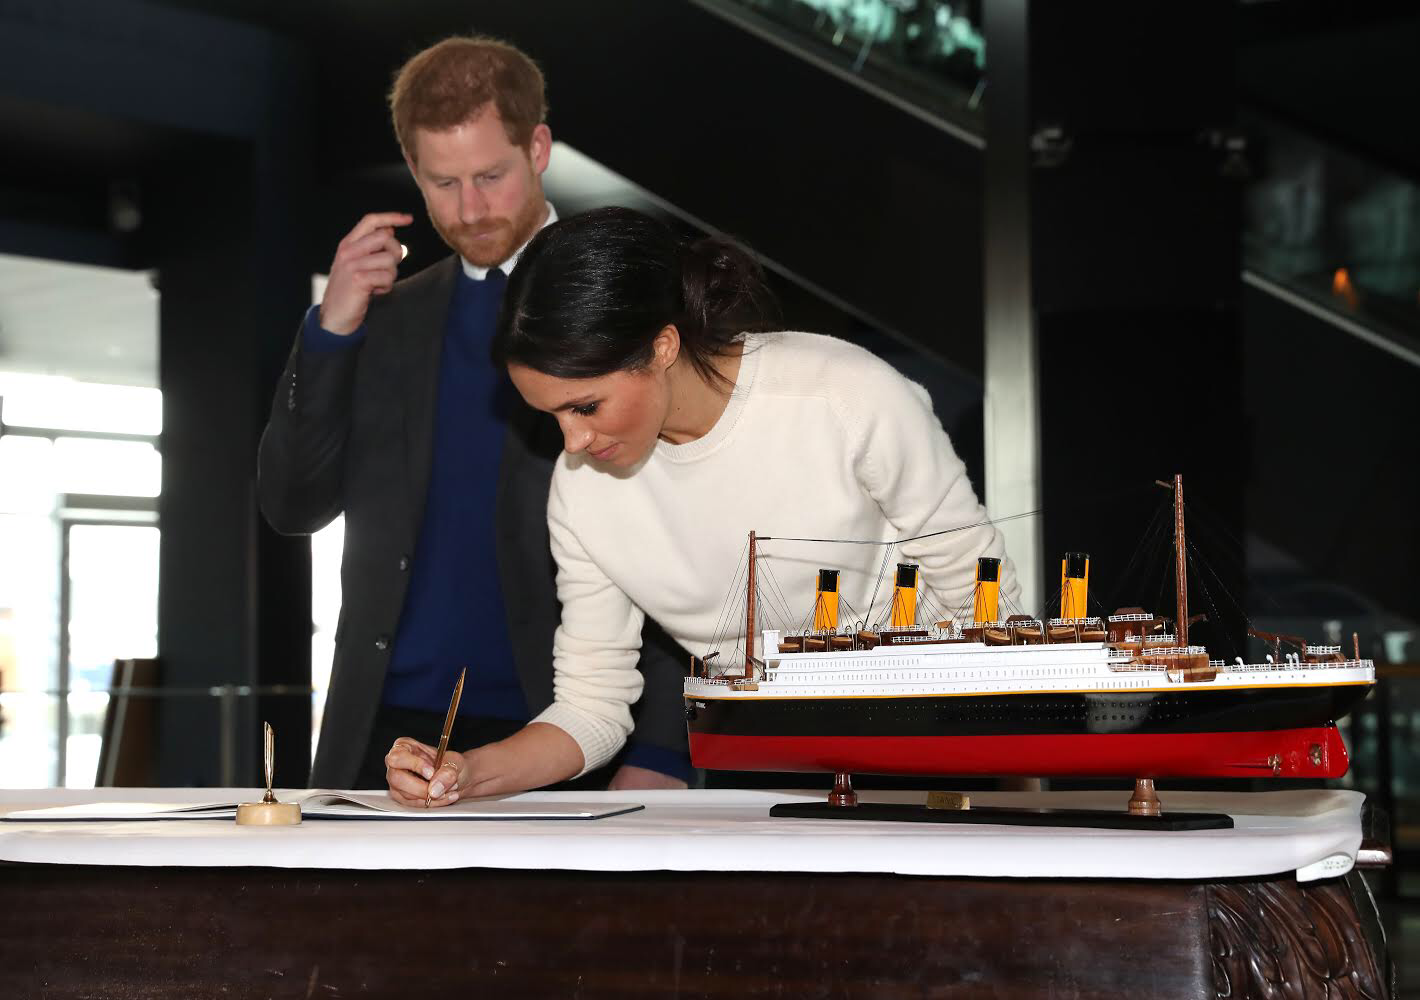 Prince Harry and Ms. Markle signing a guestbook